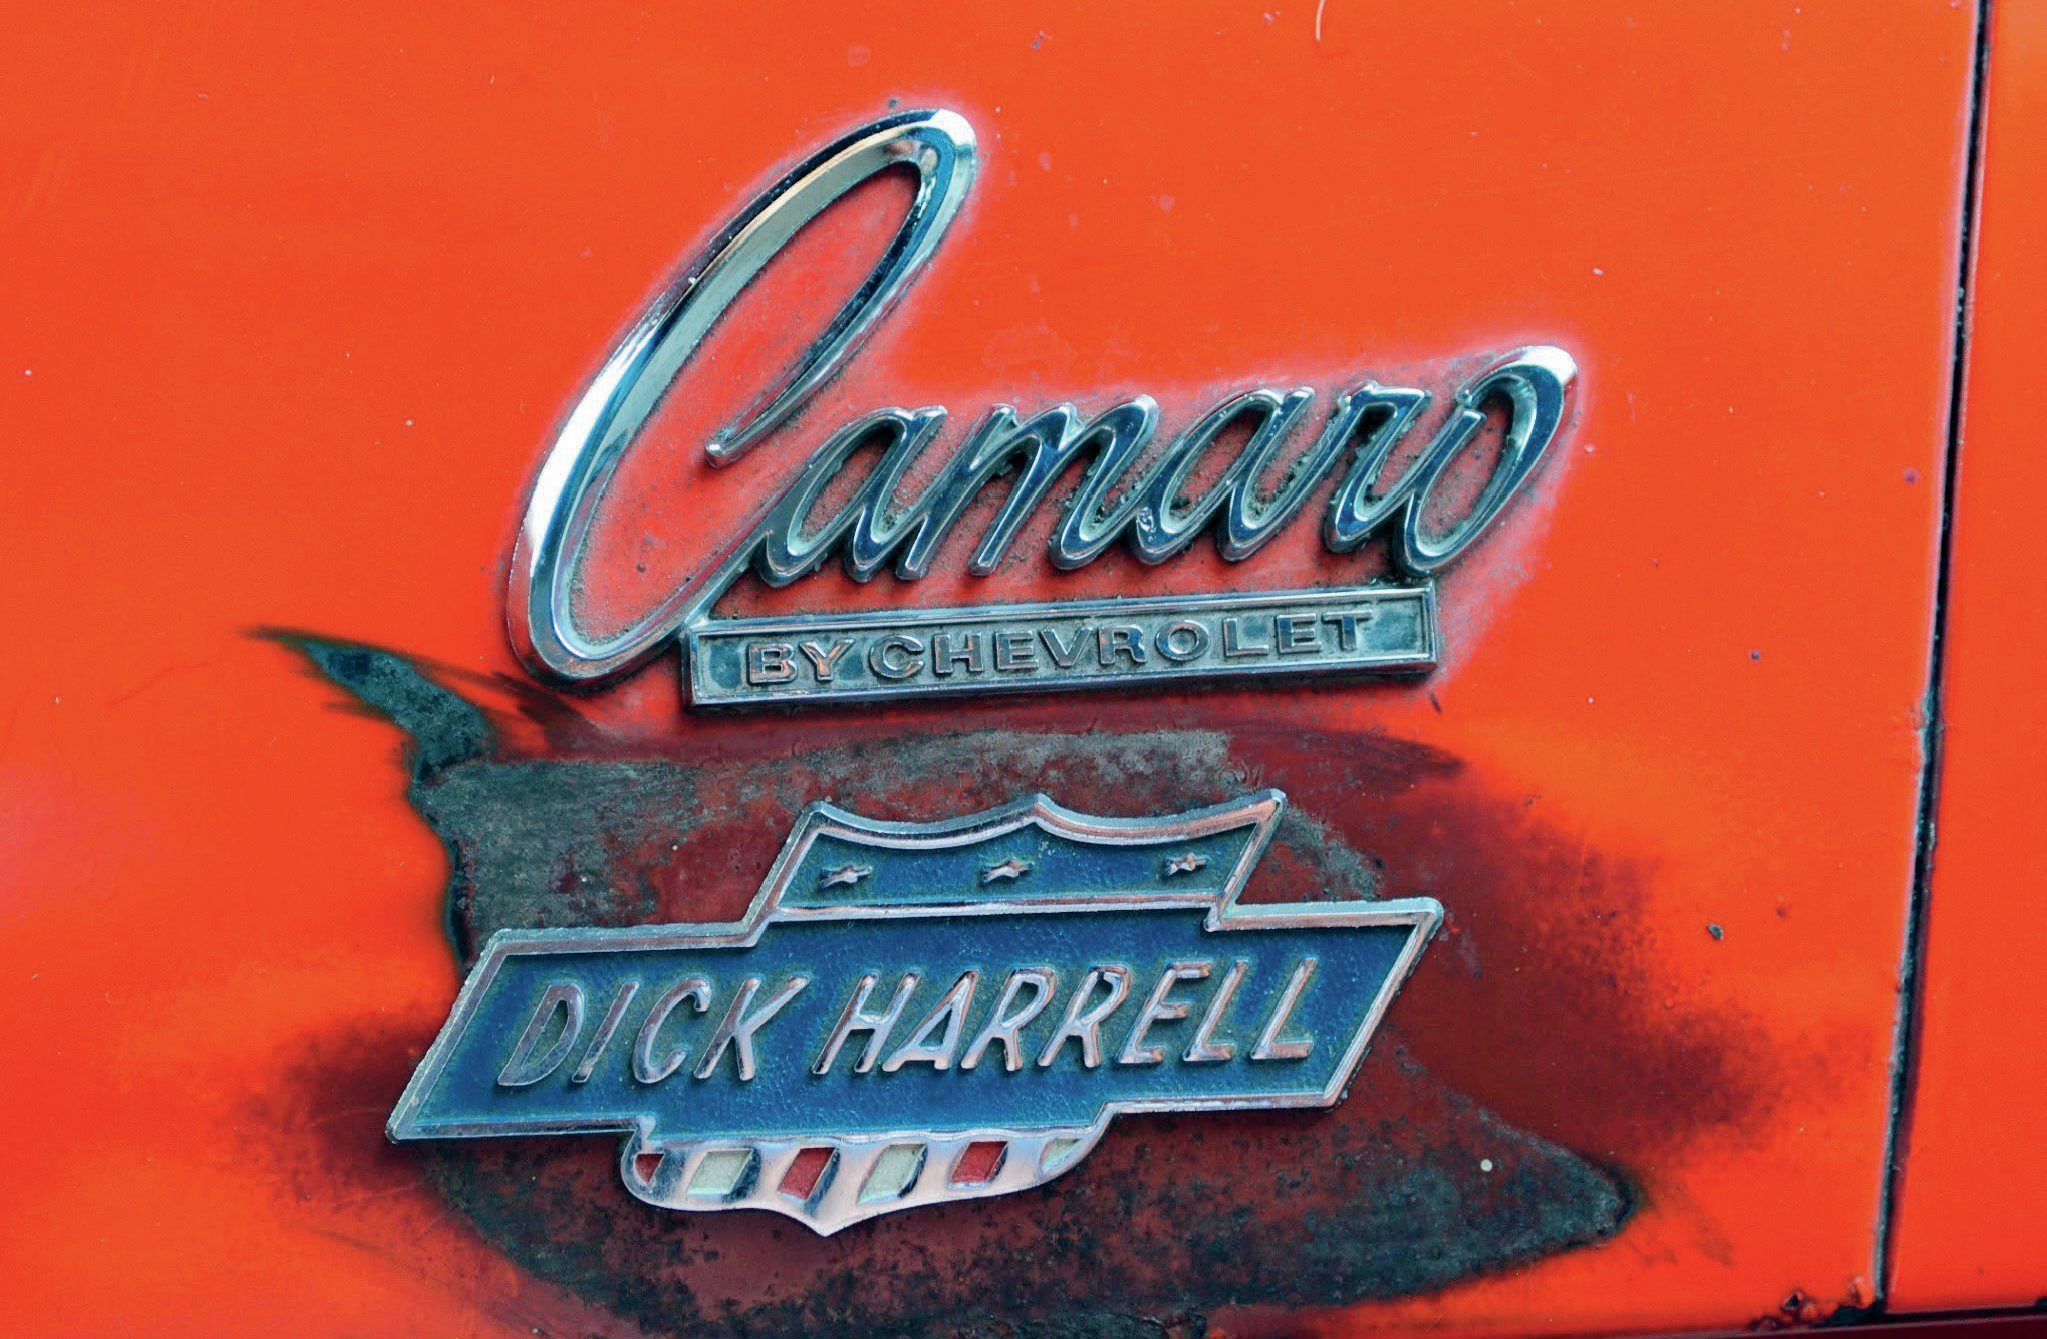 The Dick Harrell name was associated with Don Yenko, with Nickey in Chicago, and with drag racing notoriety. When he teamed up with Fred Gibb, Dick made the decision to offer his own brand of supercar. These tags helped make that branding famous.